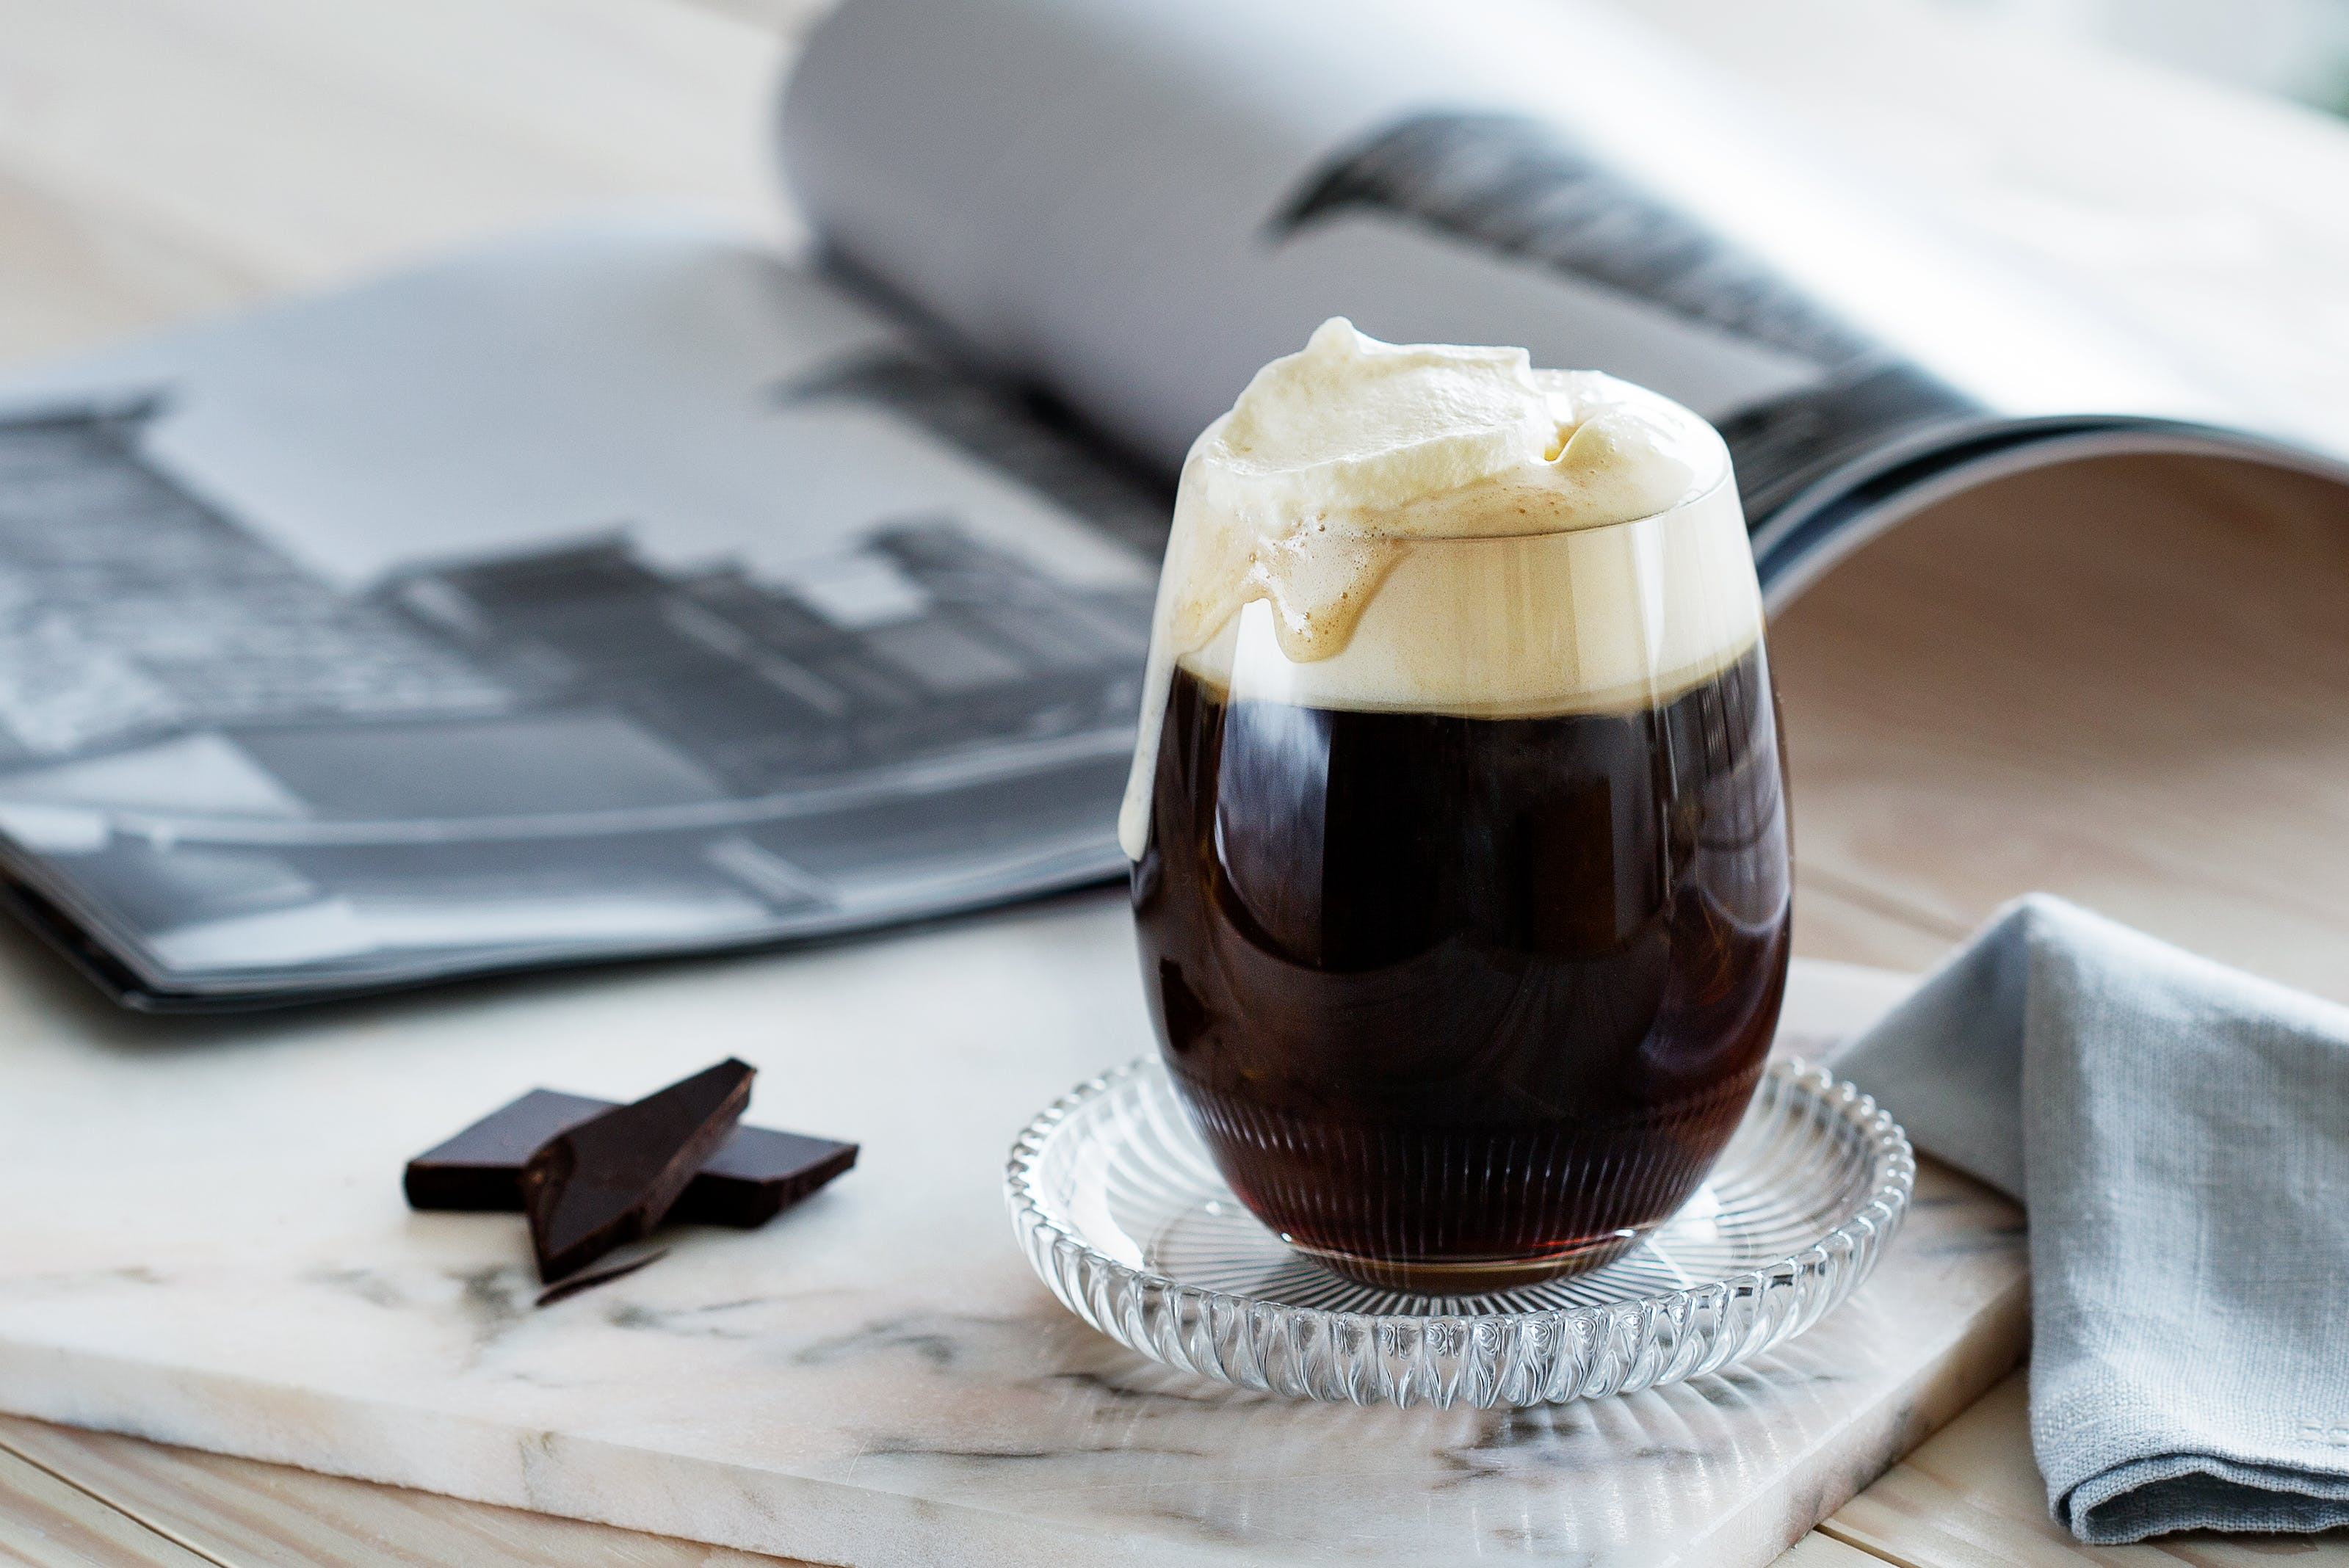 Coffee with Whipped Cream and a Touch of Vanilla